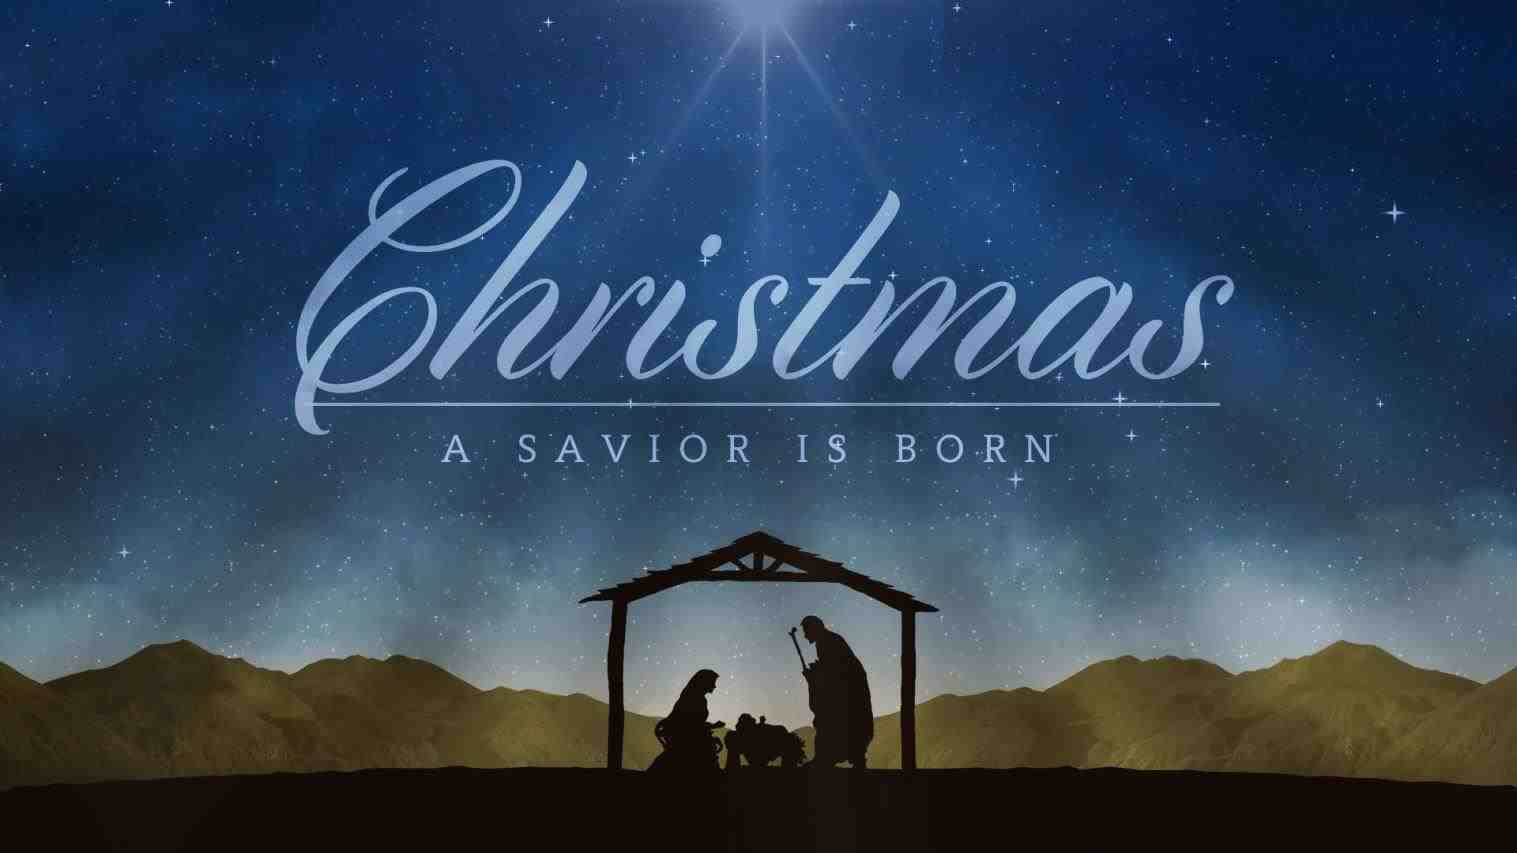 and-beautiful-wallpapers-for-lovely-manger-christmas-background-and-beautiful-wallpapers-for-desktop-nativity-scene-video-loop-worship-media-nativity-manger-christmas.jpg